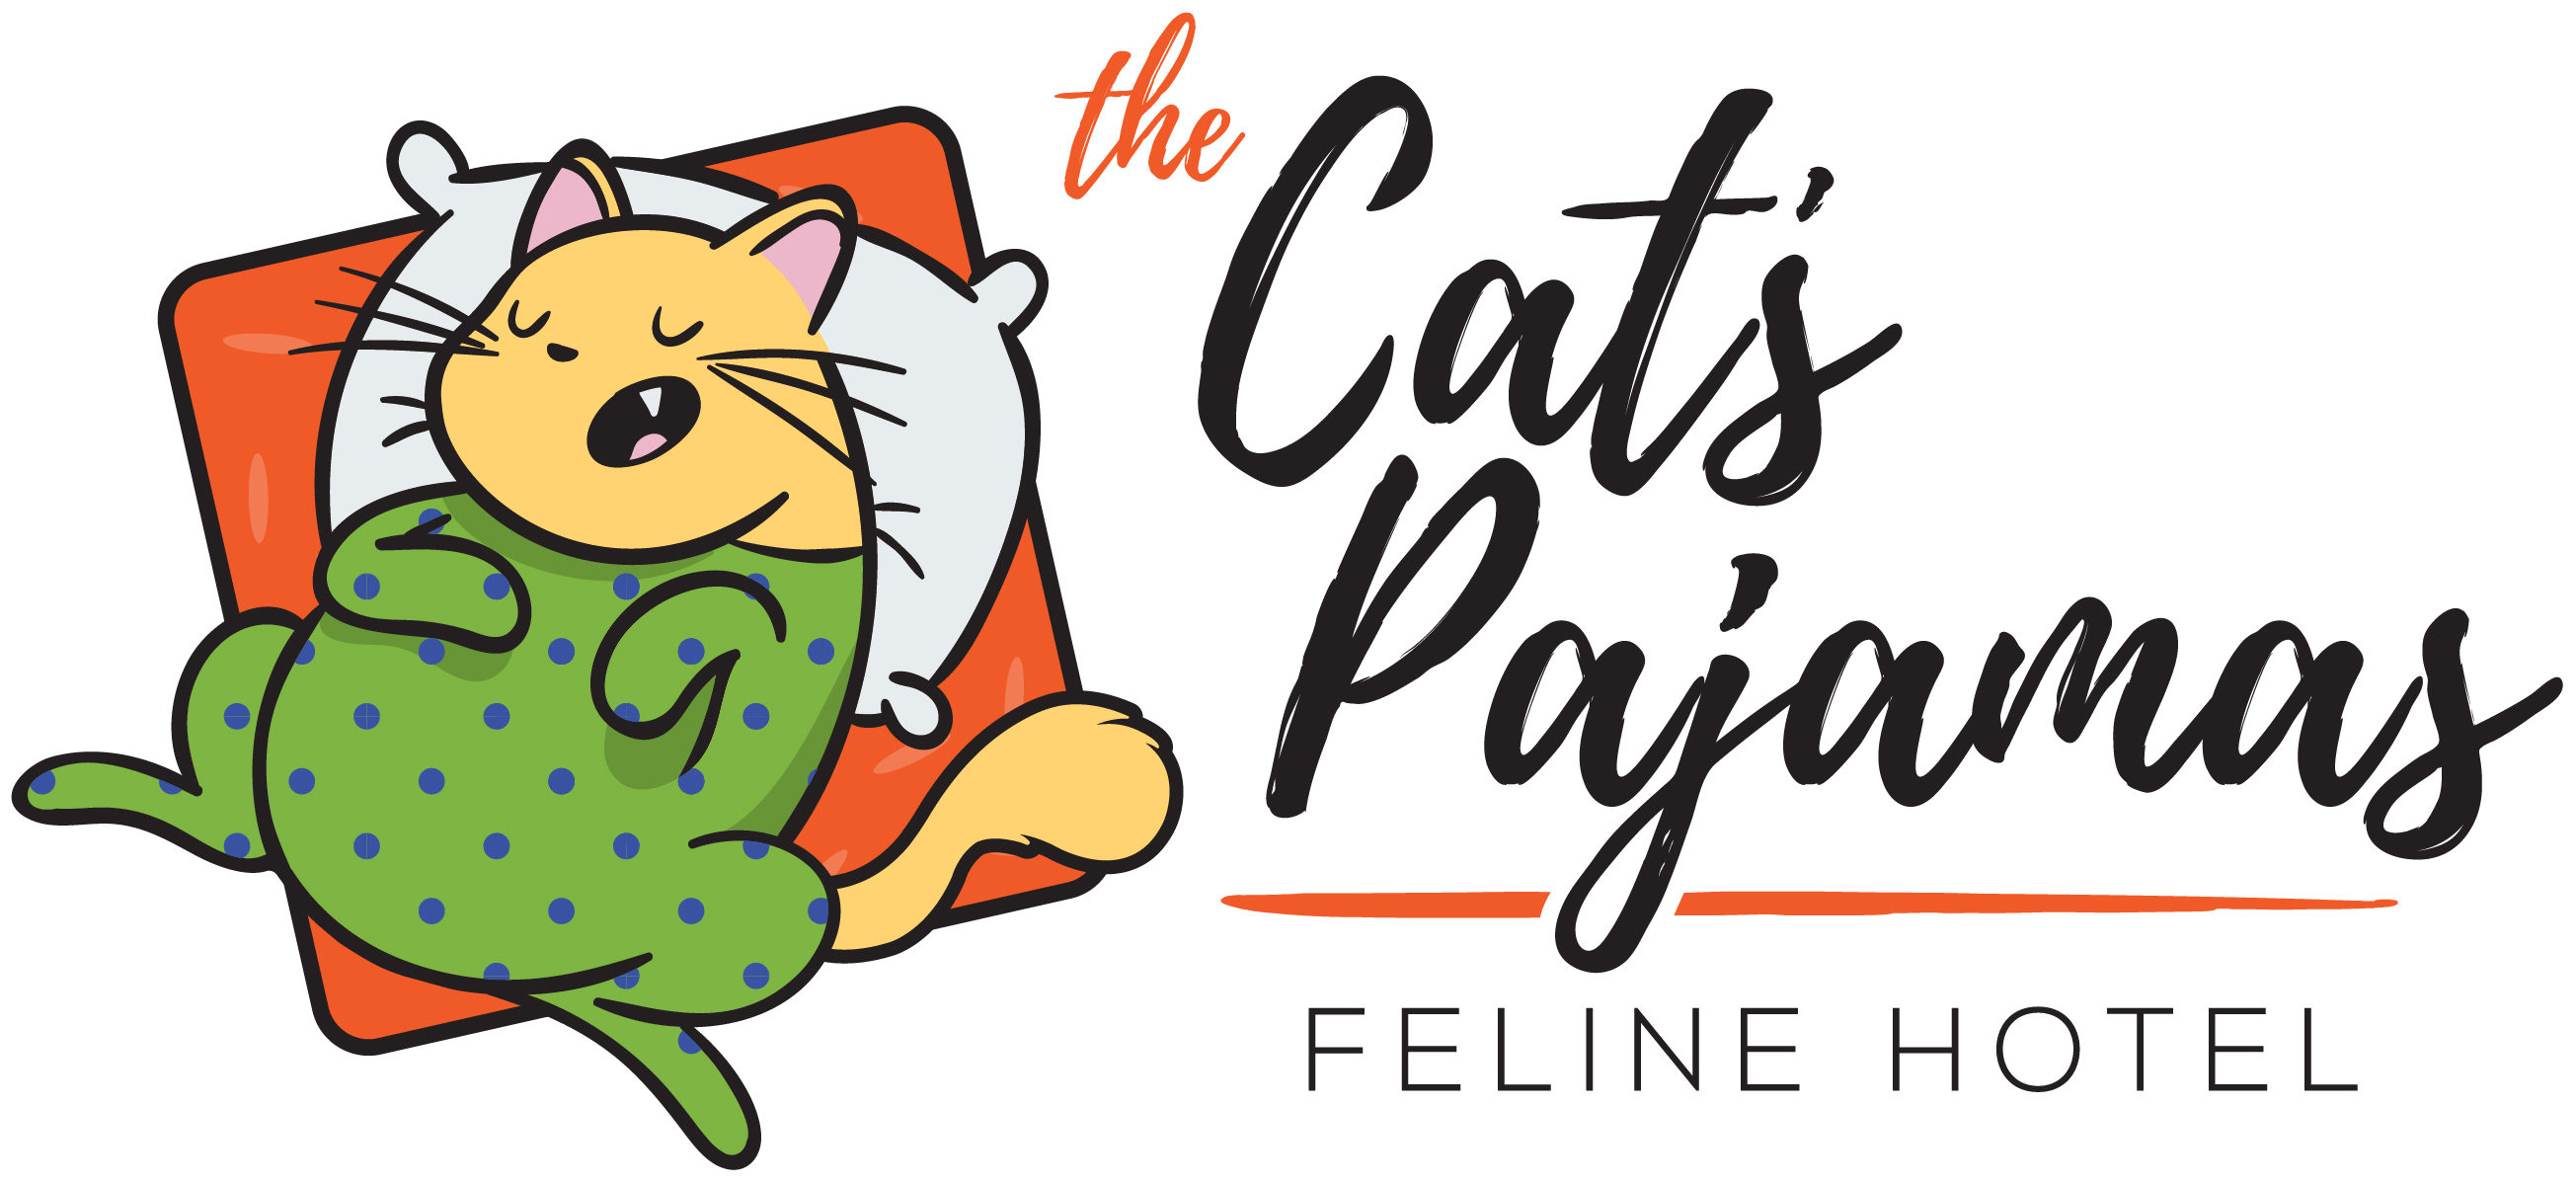 The Cat's Pajamas Feline Hotel – Cat Hotel, Cat Boarding